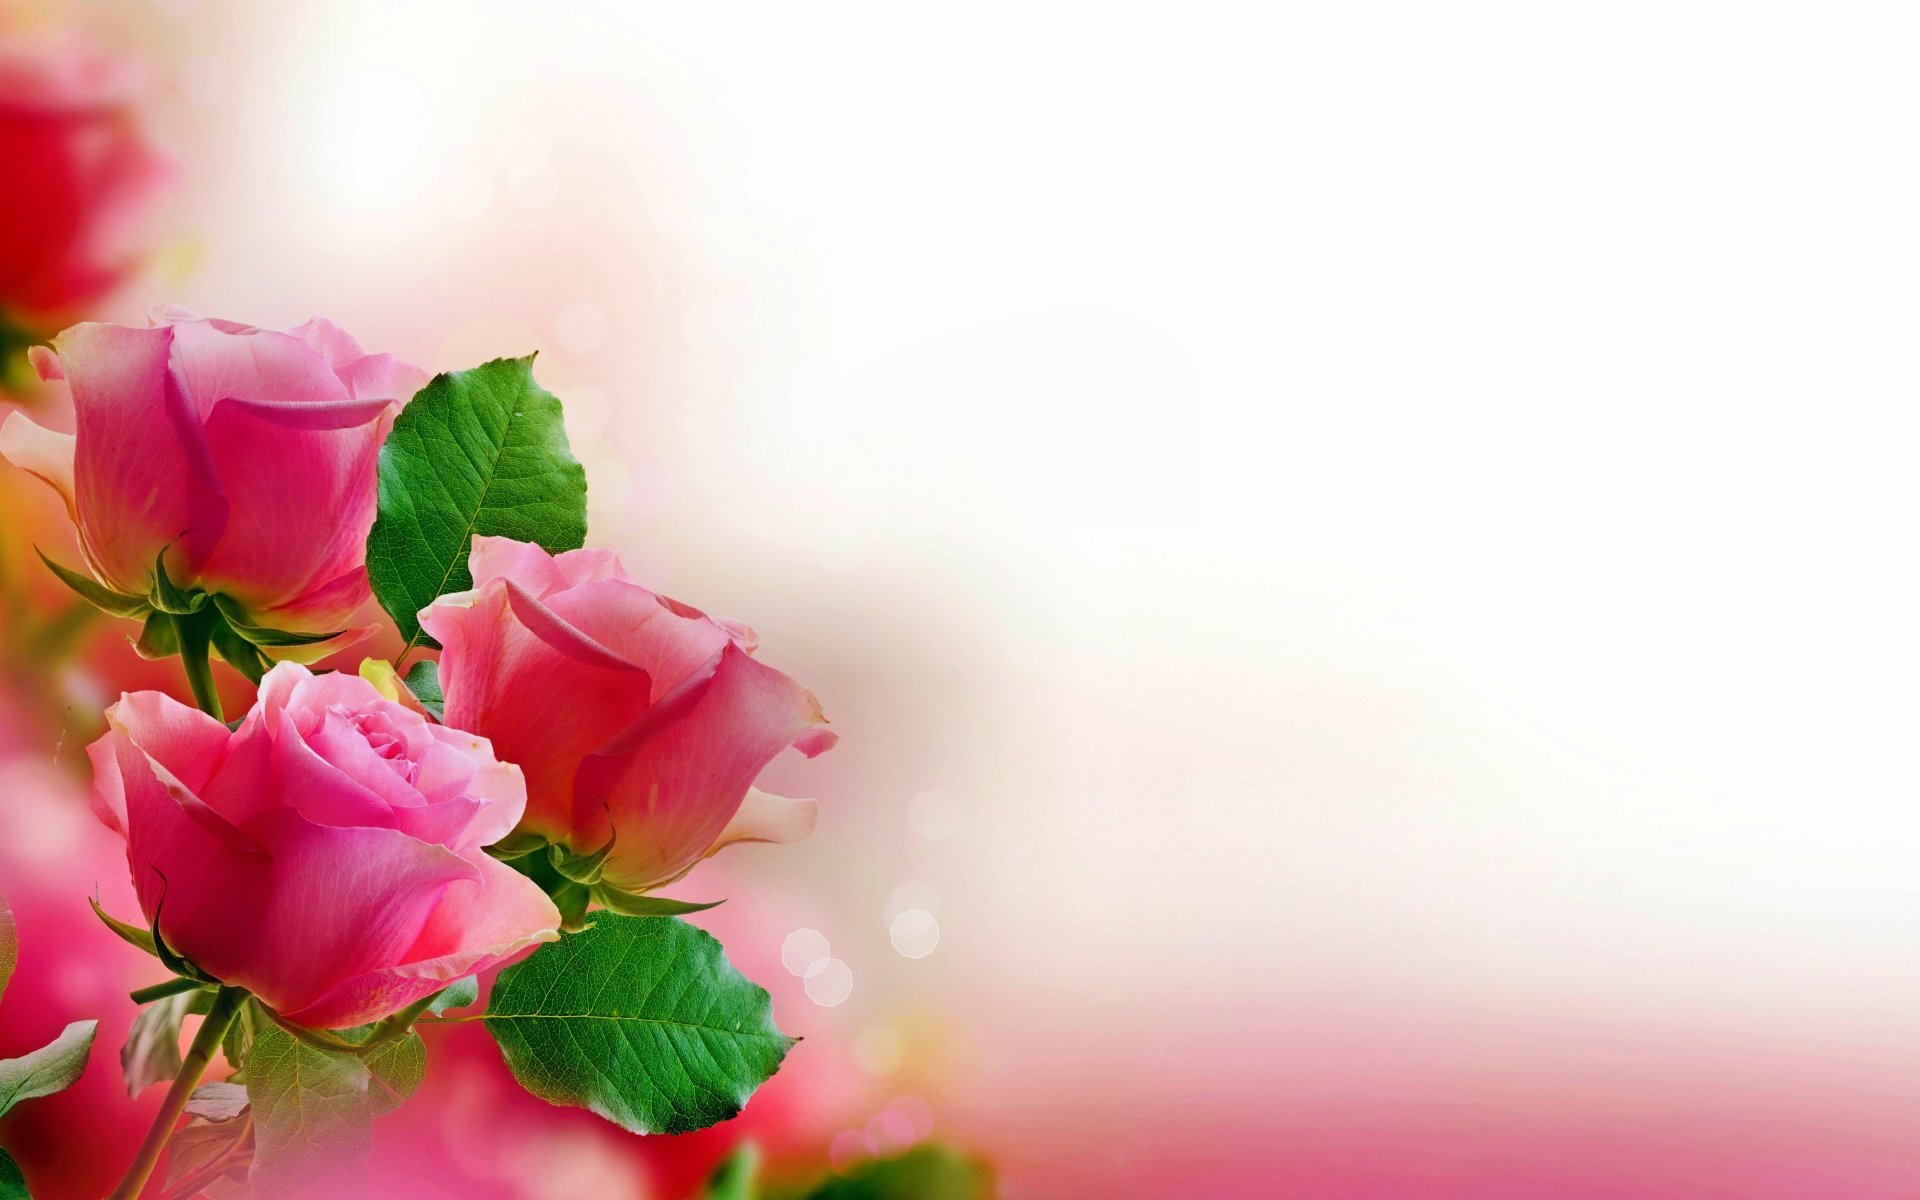 Earth - Rose  Valentine's Day Pink Rose Pastel Flower Wallpaper